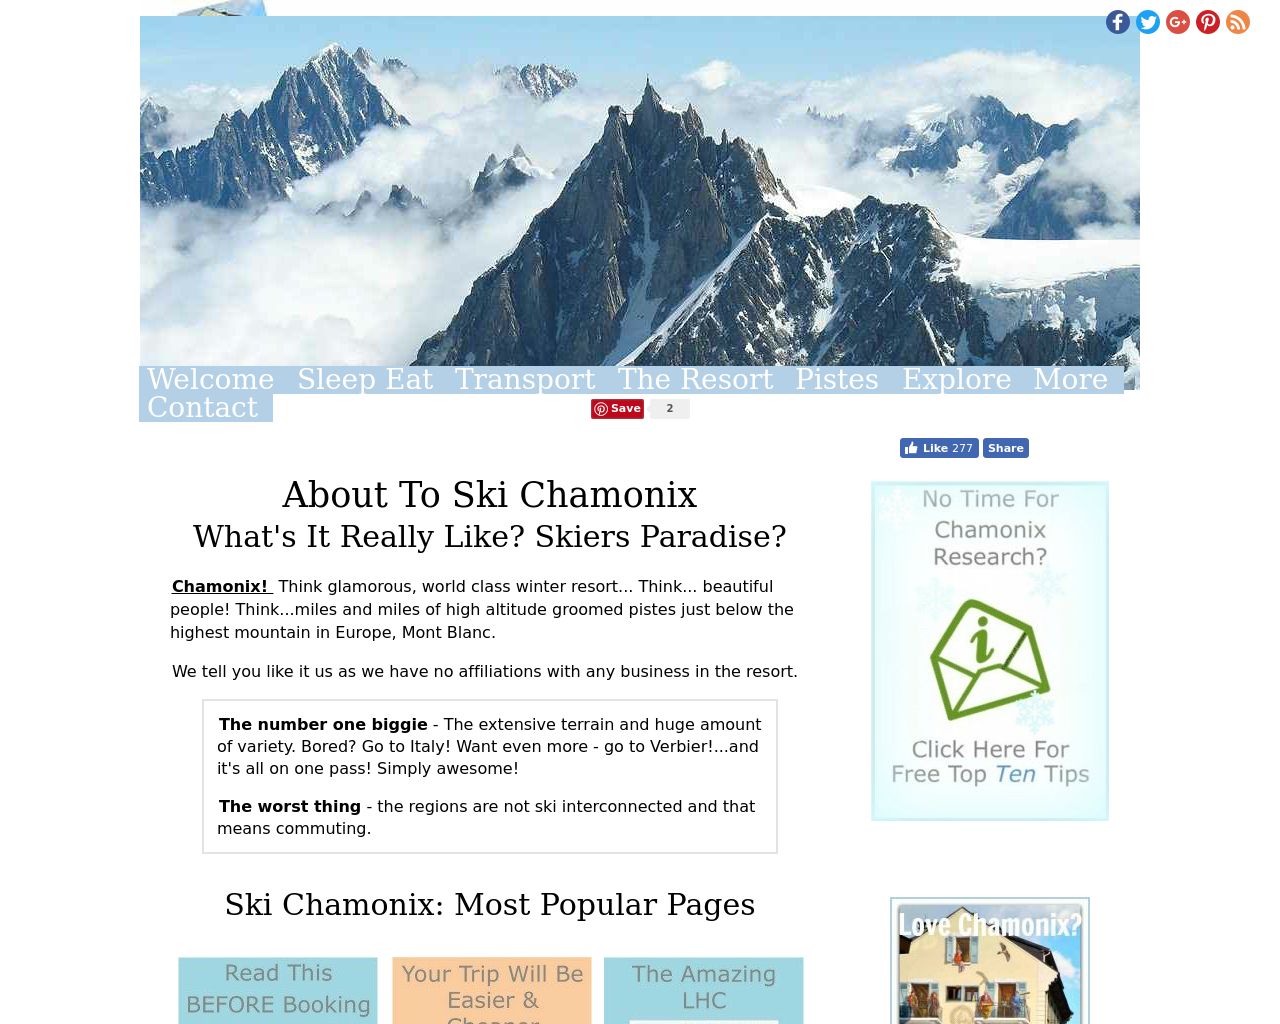 Ski-Chamonix-Advertising-Reviews-Pricing